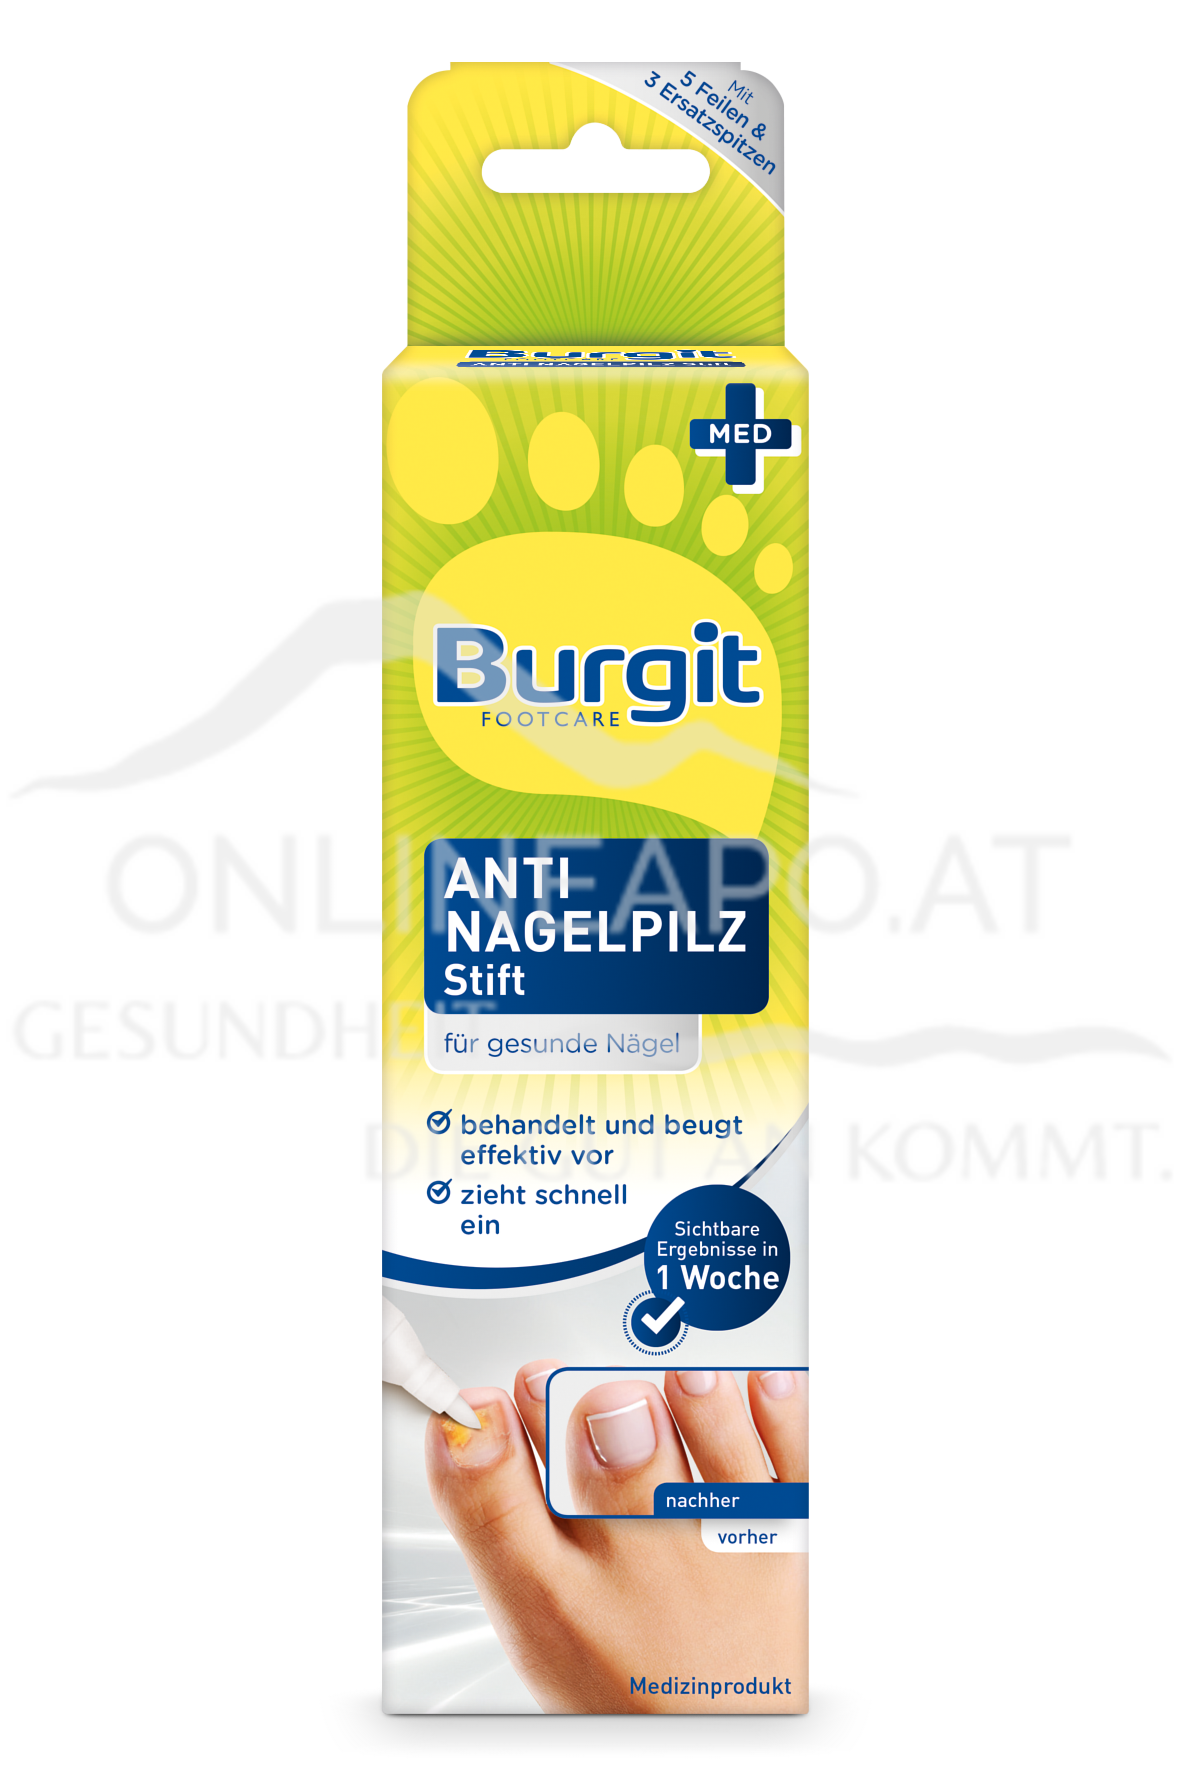 Burgit Anti Nagelpilz Stift